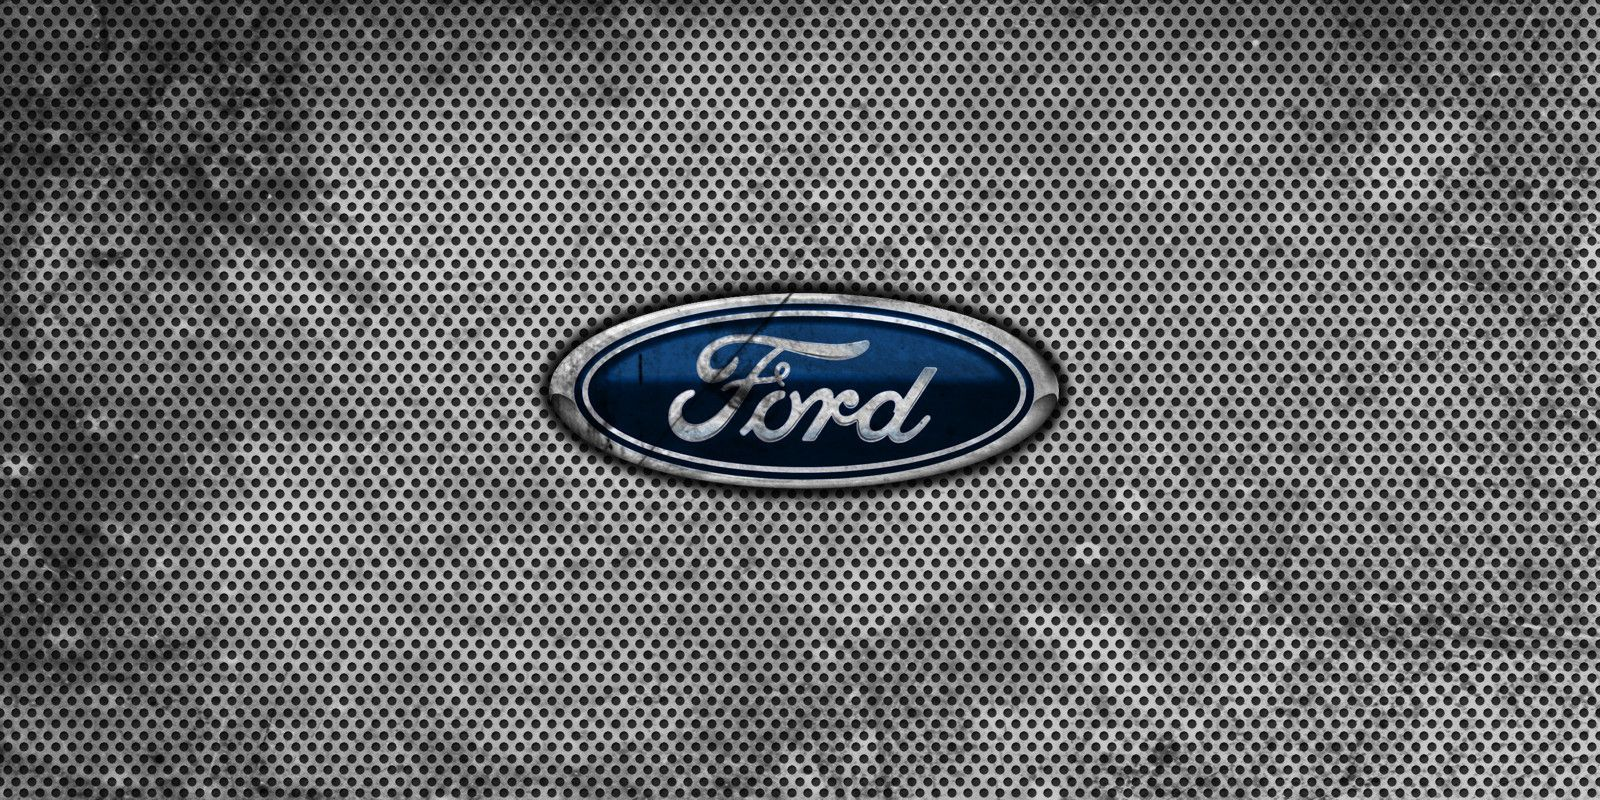 Ford Logo Wallpapers 1600x800